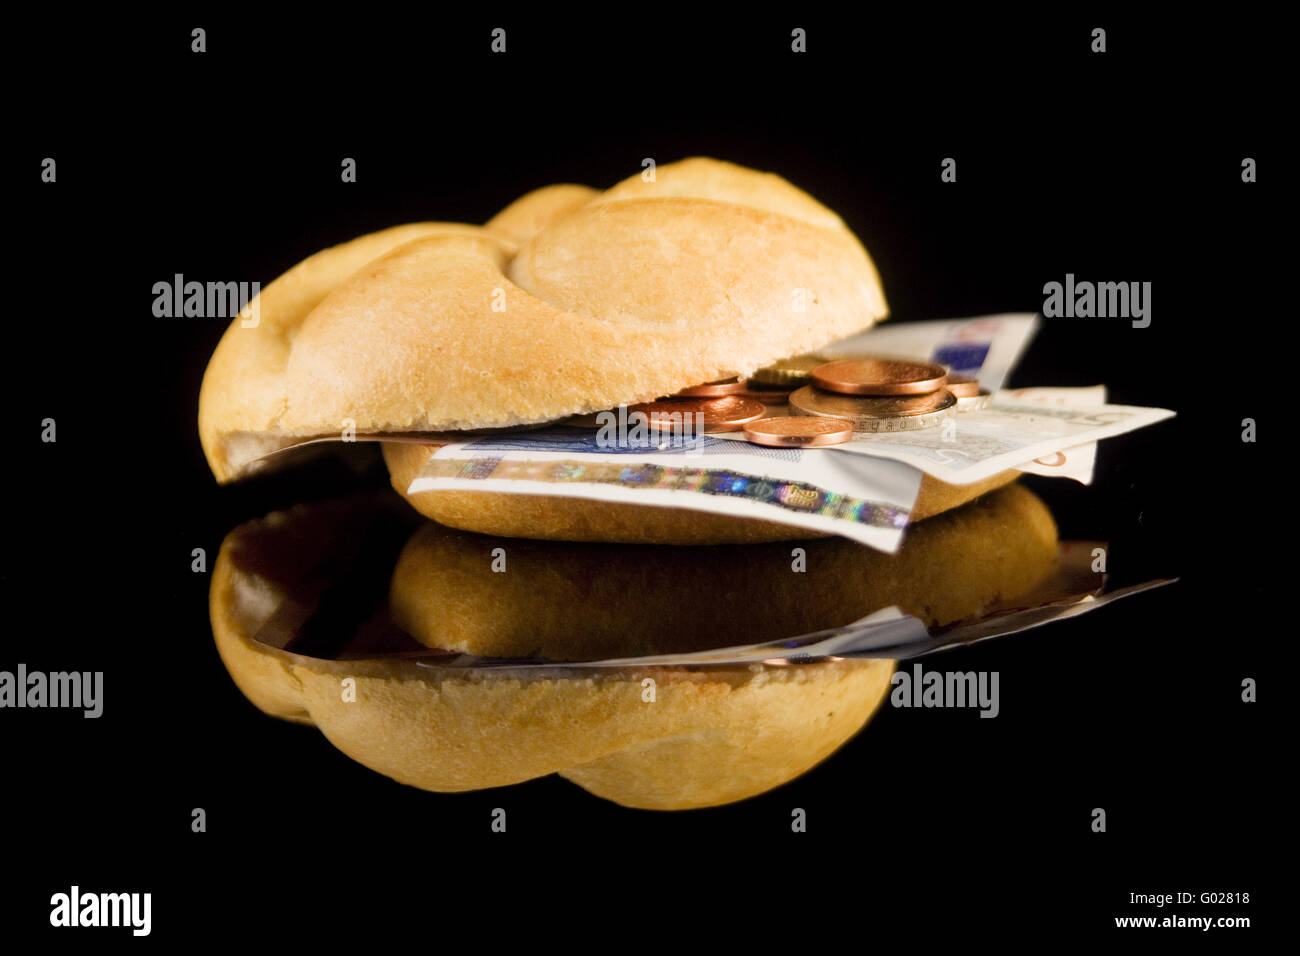 bun with coins - Stock Image